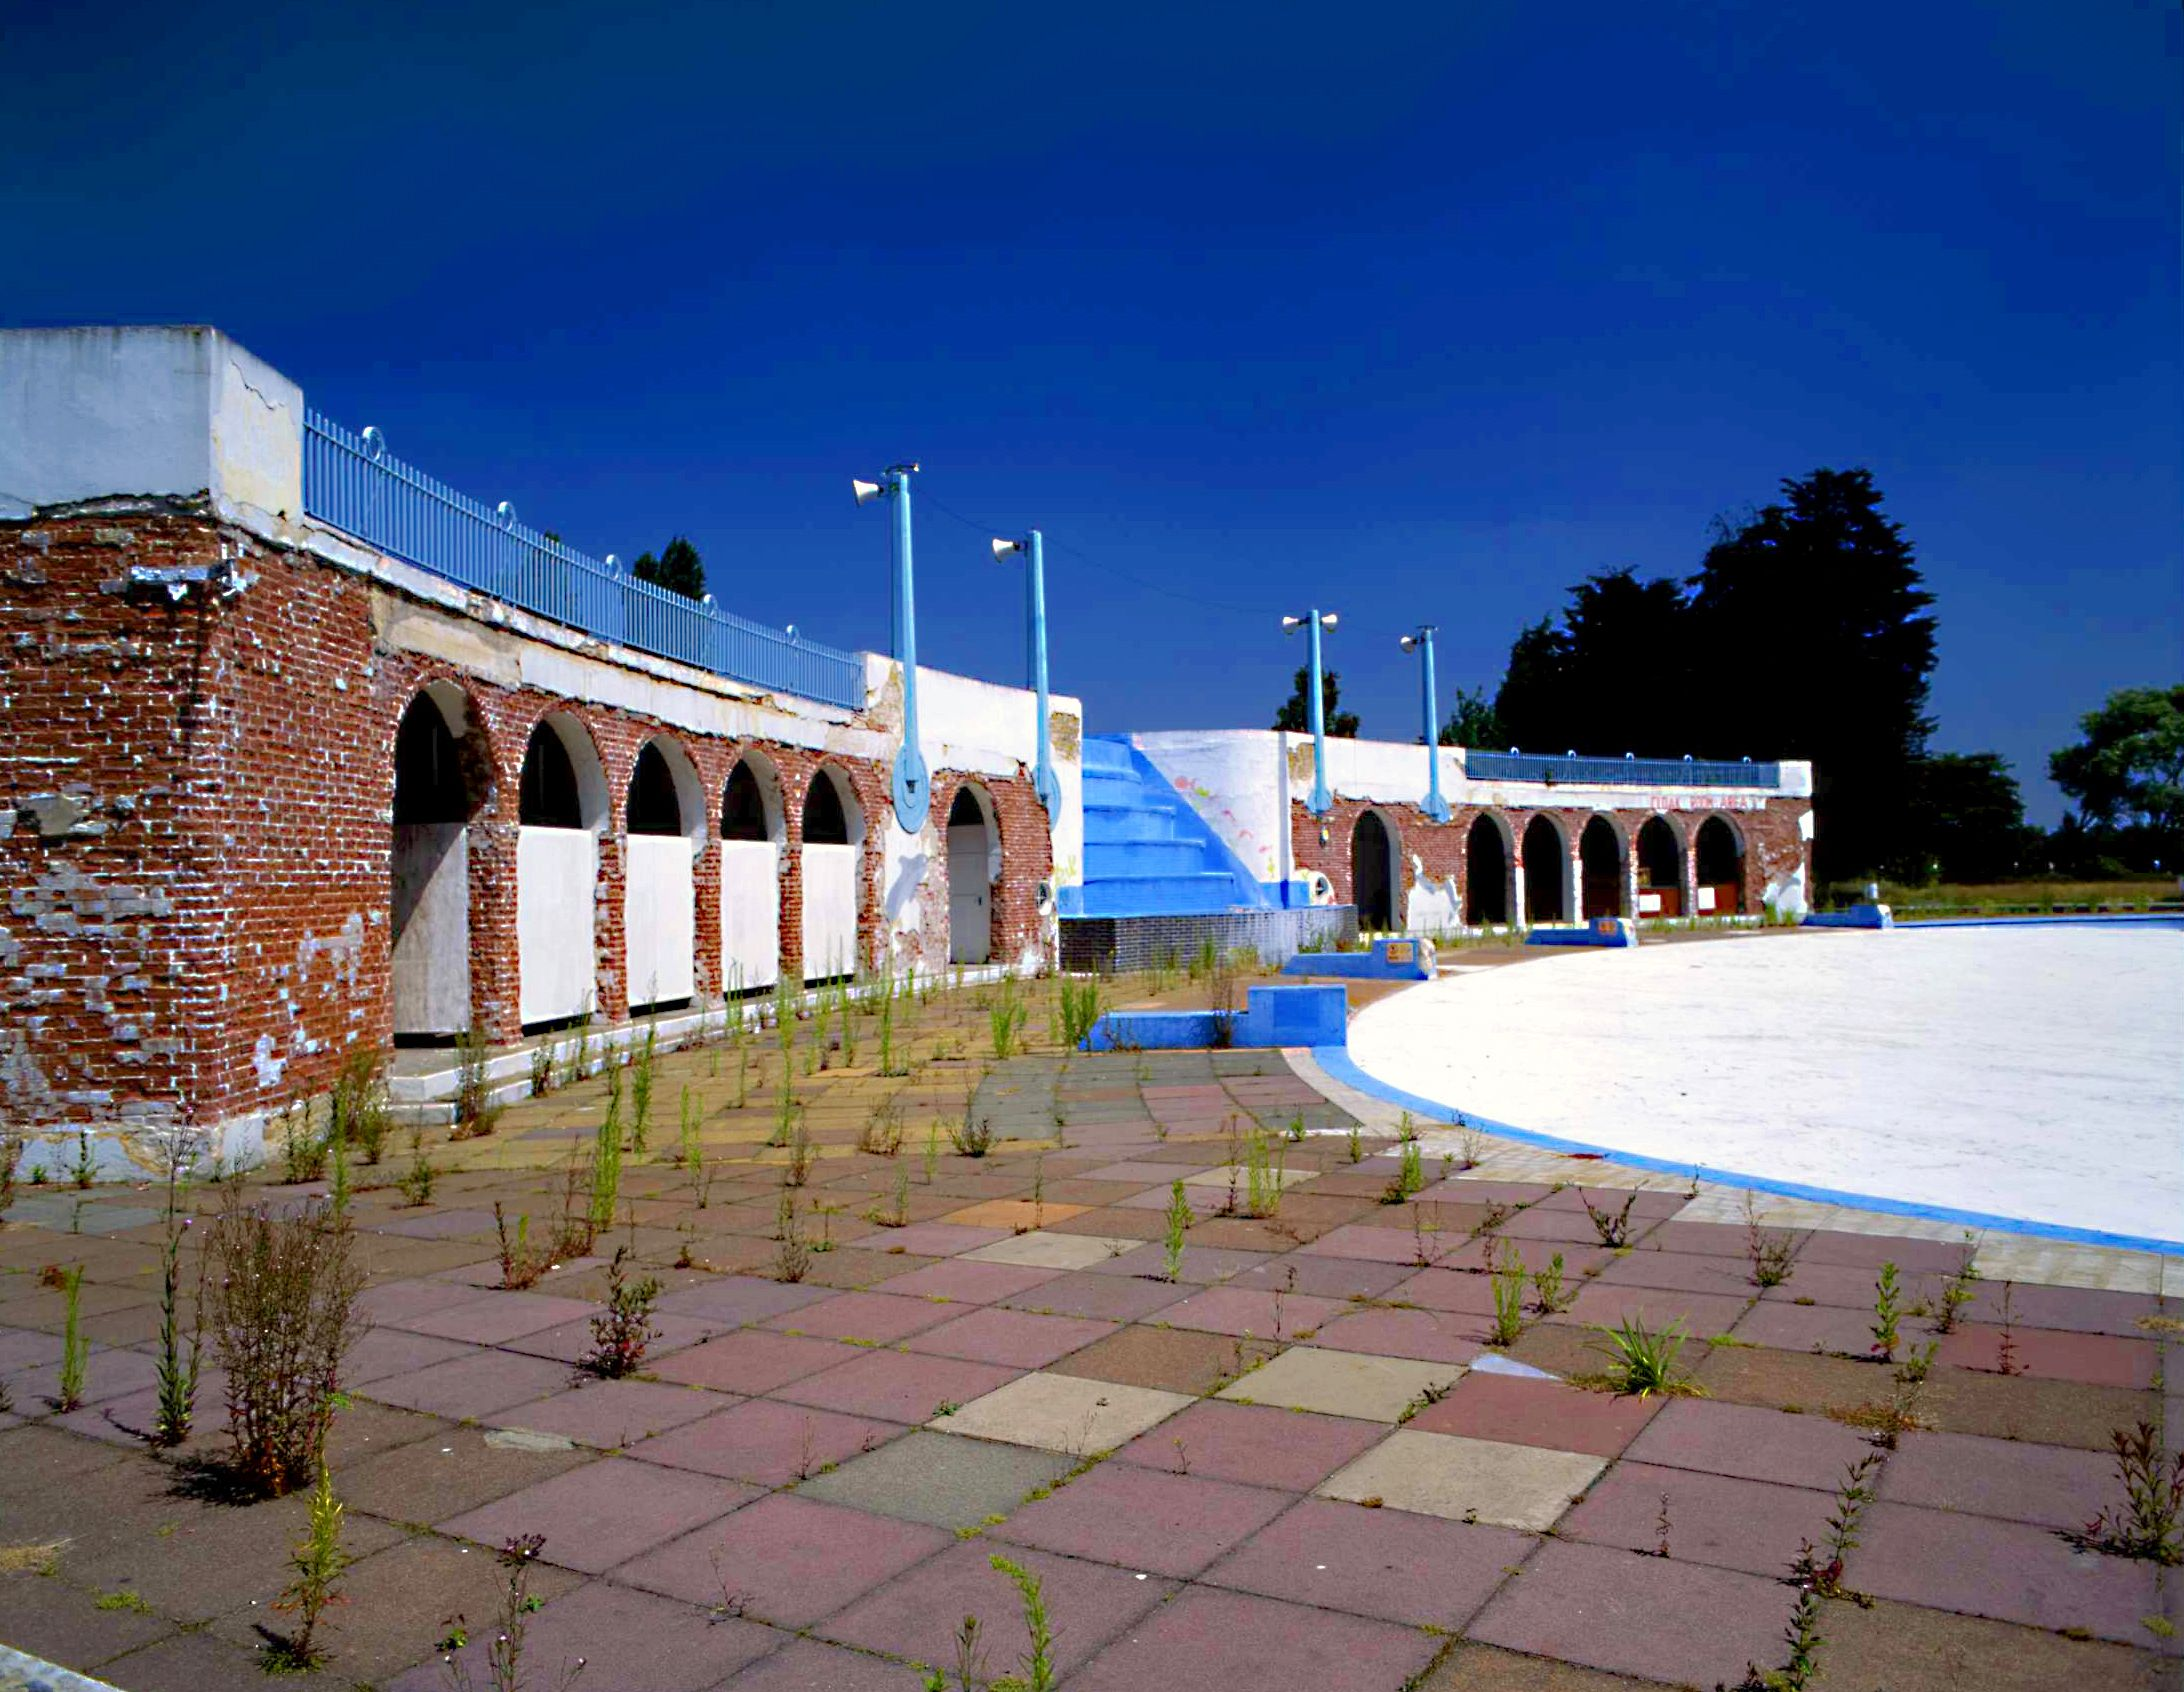 Finchley lido history north london outdoor pool london - Outdoor swimming pools north west ...